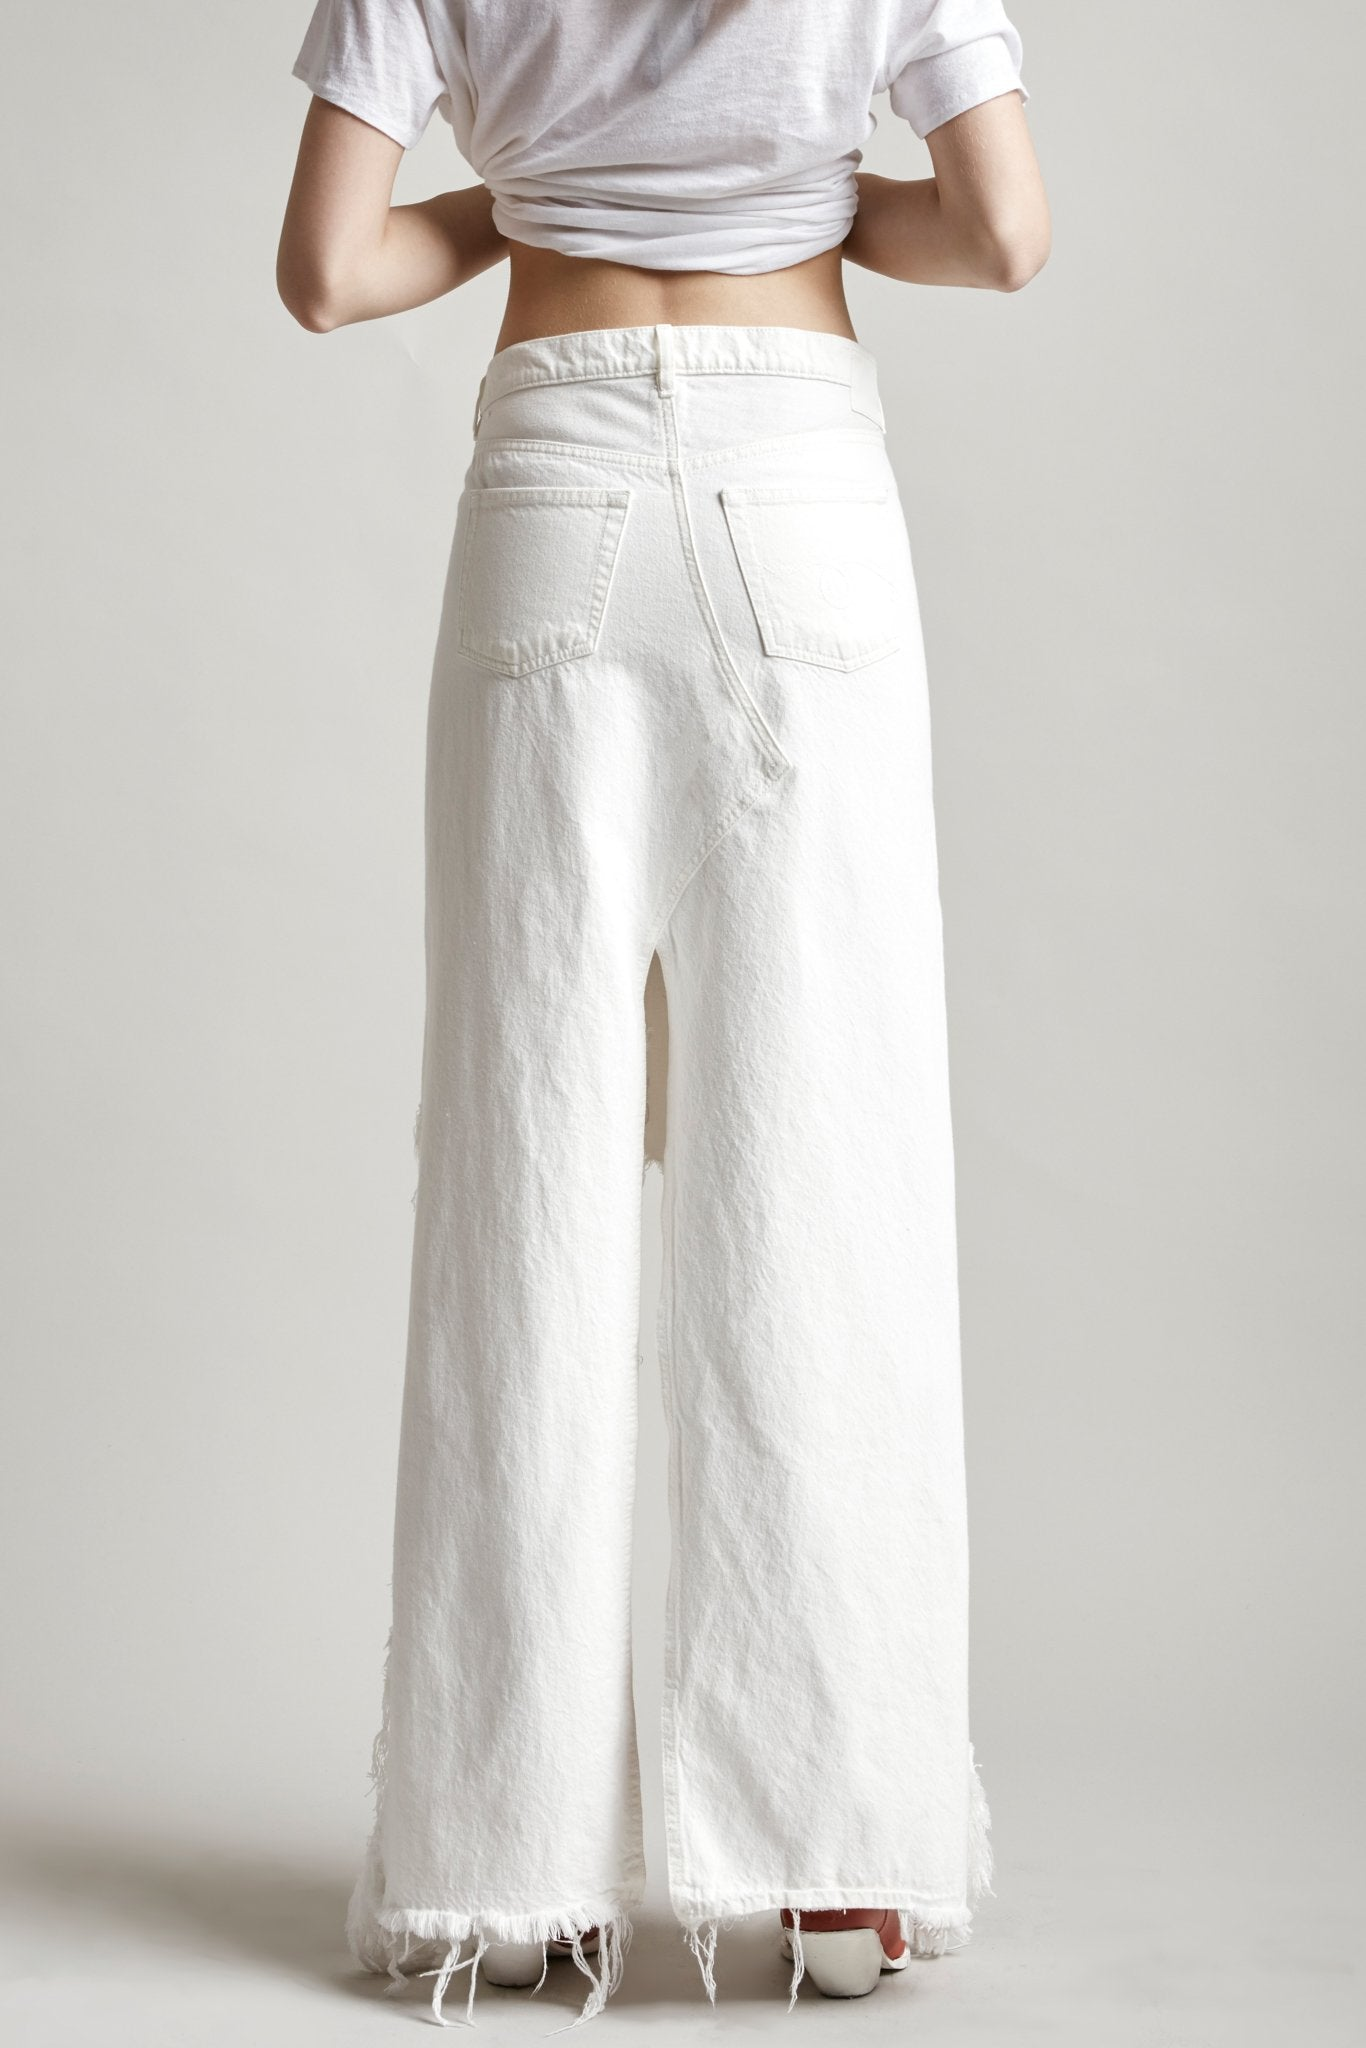 Harrow Denim Skirt (Long Skirt) - Willie White